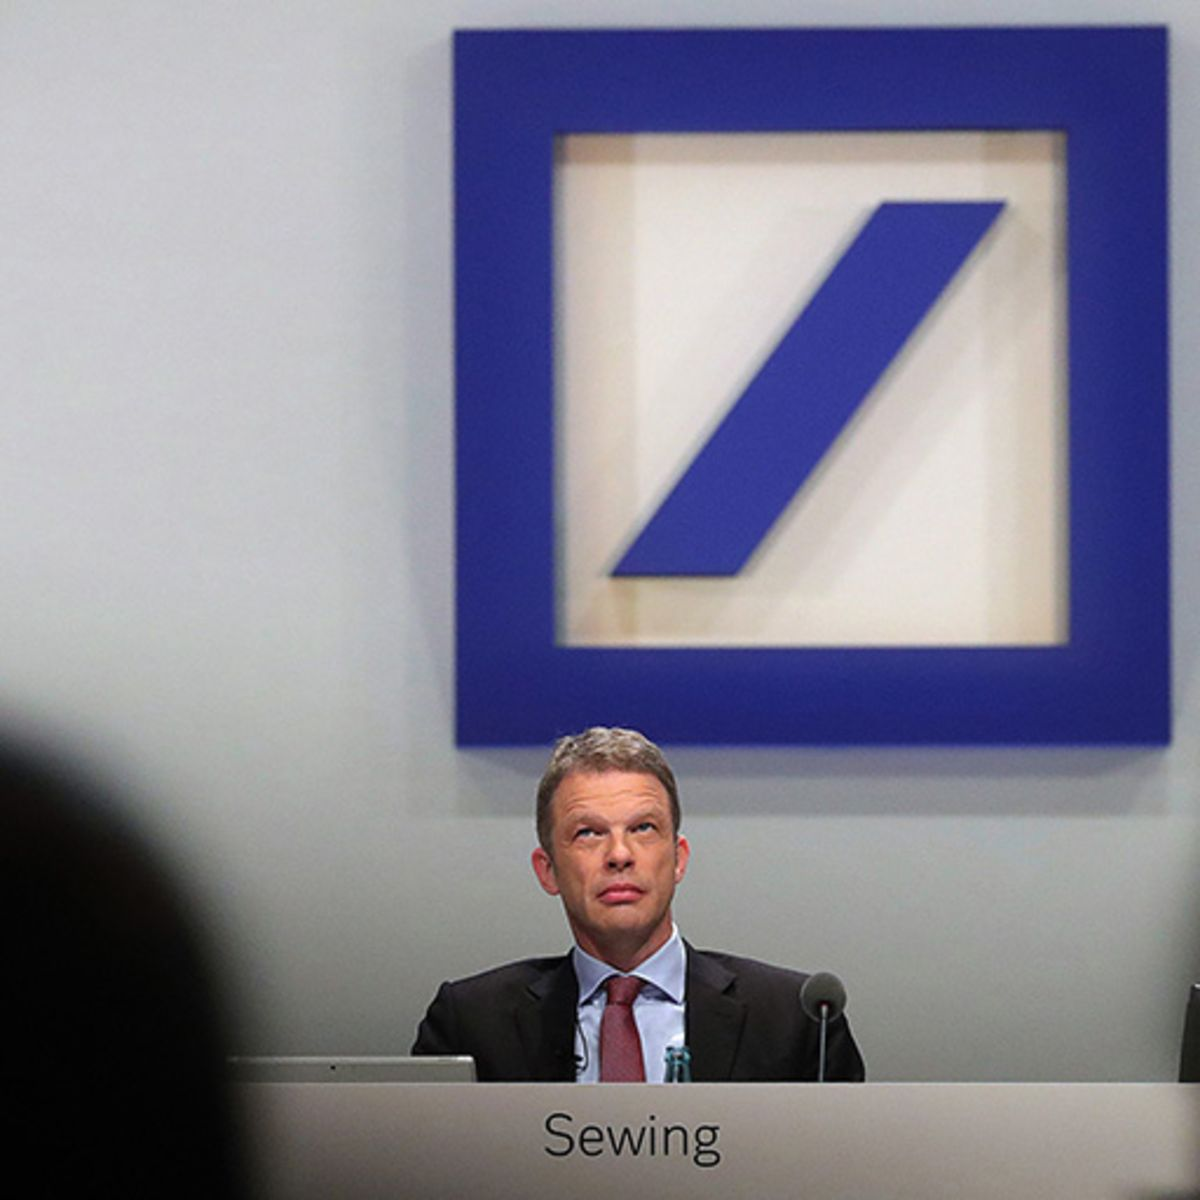 Deutsche Bank CEO doesn't expect to become target in probe